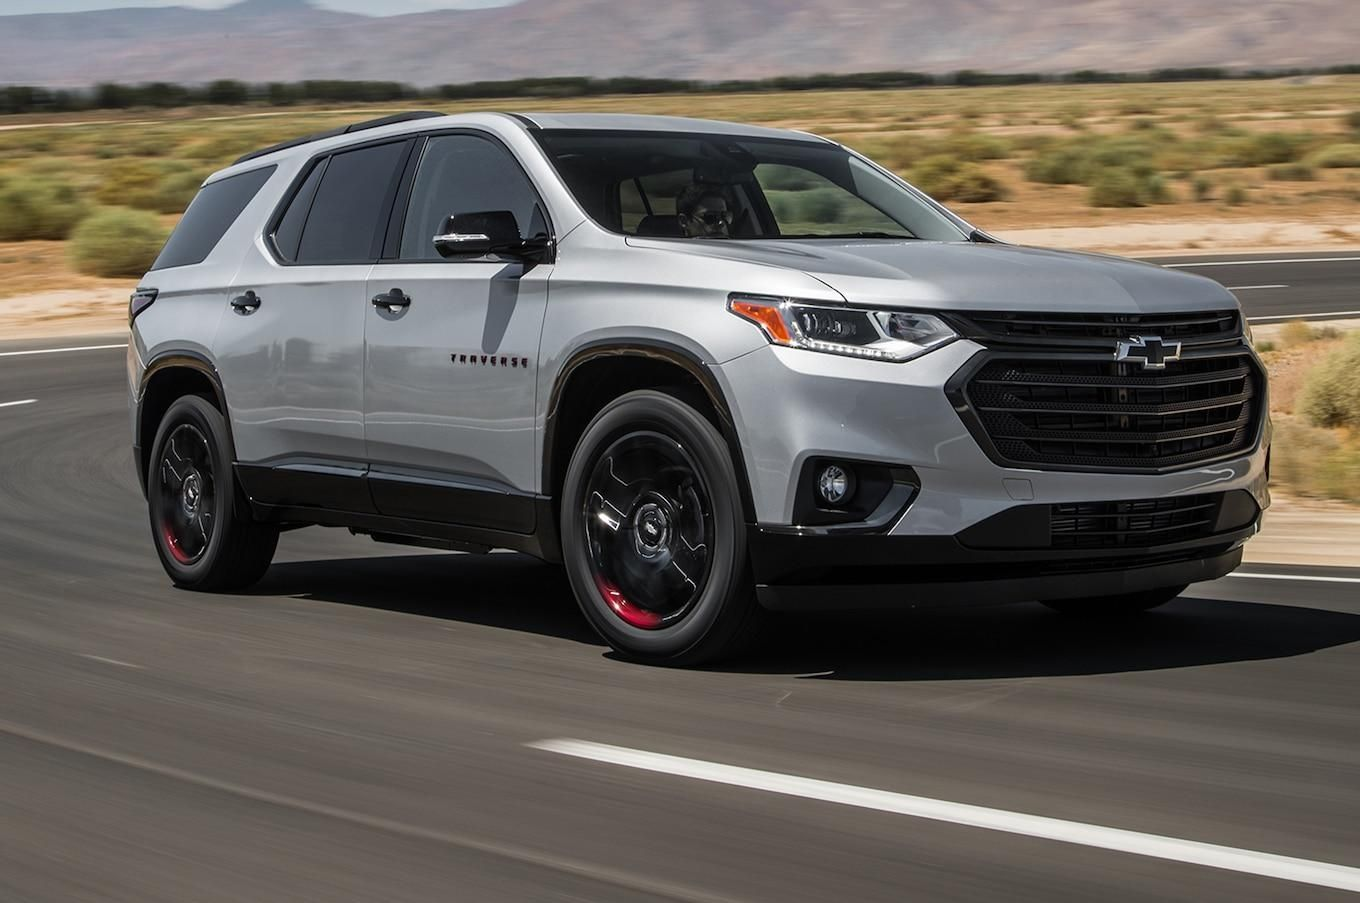 Chevrolet Traverse 2018 Motor Trend Suv Of The Year Finalist With Regard To 2019 Chevrolet Traverse New Review Chevrolet